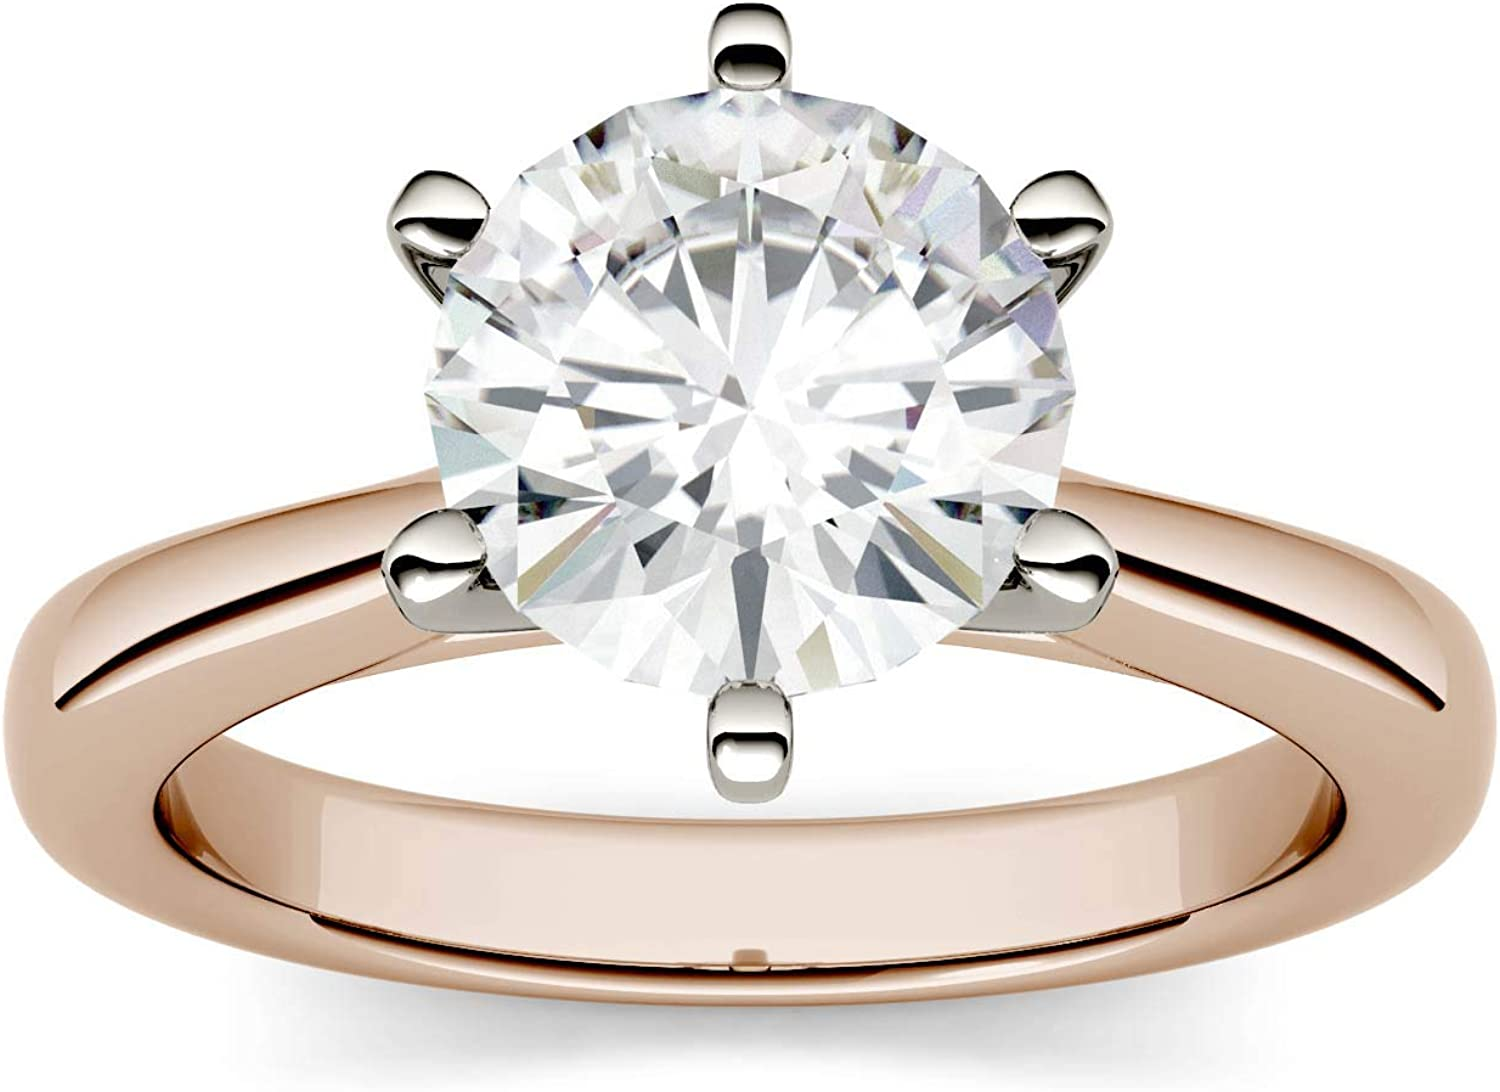 14K Rose Gold NEW before selling ☆ Moissanite by Round Colvard Max 65% OFF 8mm Engageme Charles